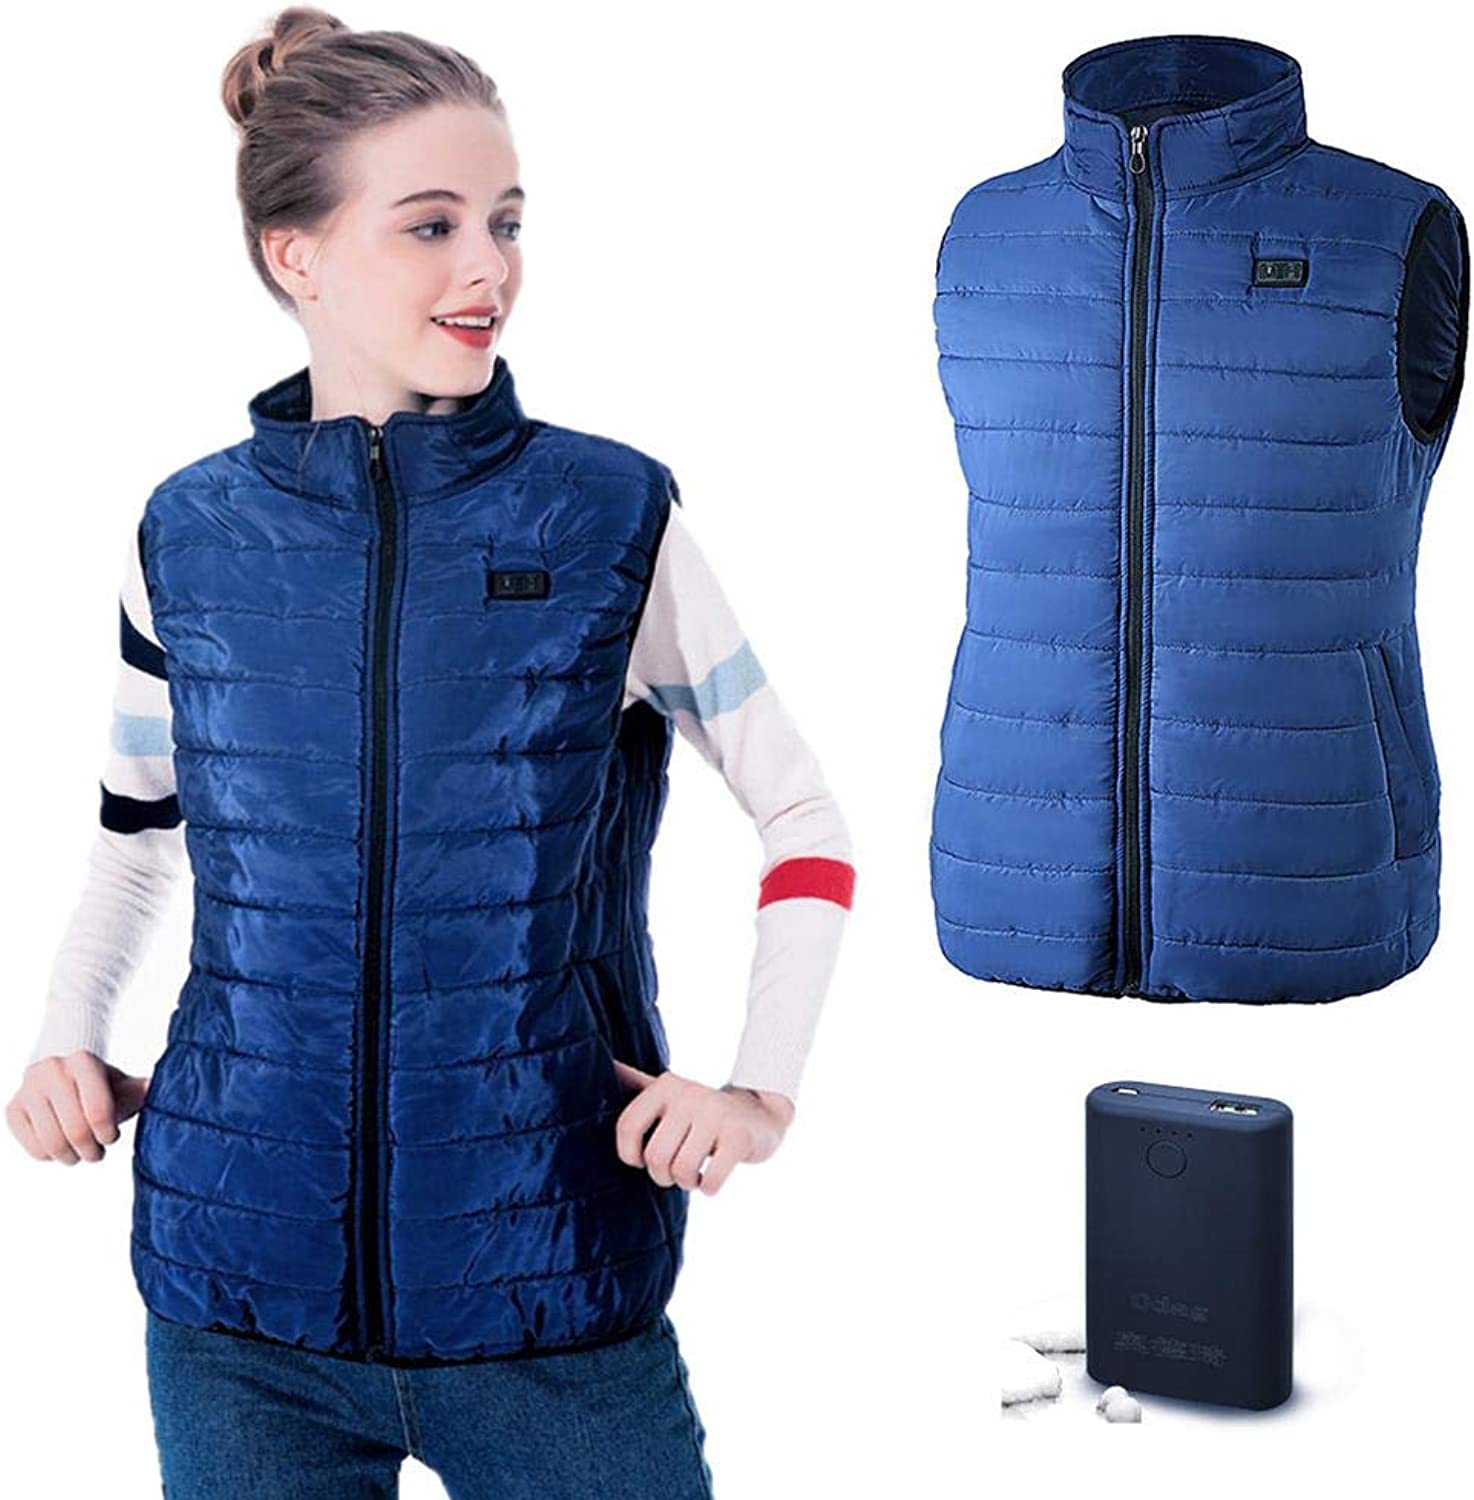 Fovolat  Women's Battery Heated Vest  USB Charging  Electric Thermal Vest  Insulated Jacket  for Snowmobile, Motorcycle, Camping, Hiking, Ski, Fishing  1pcs